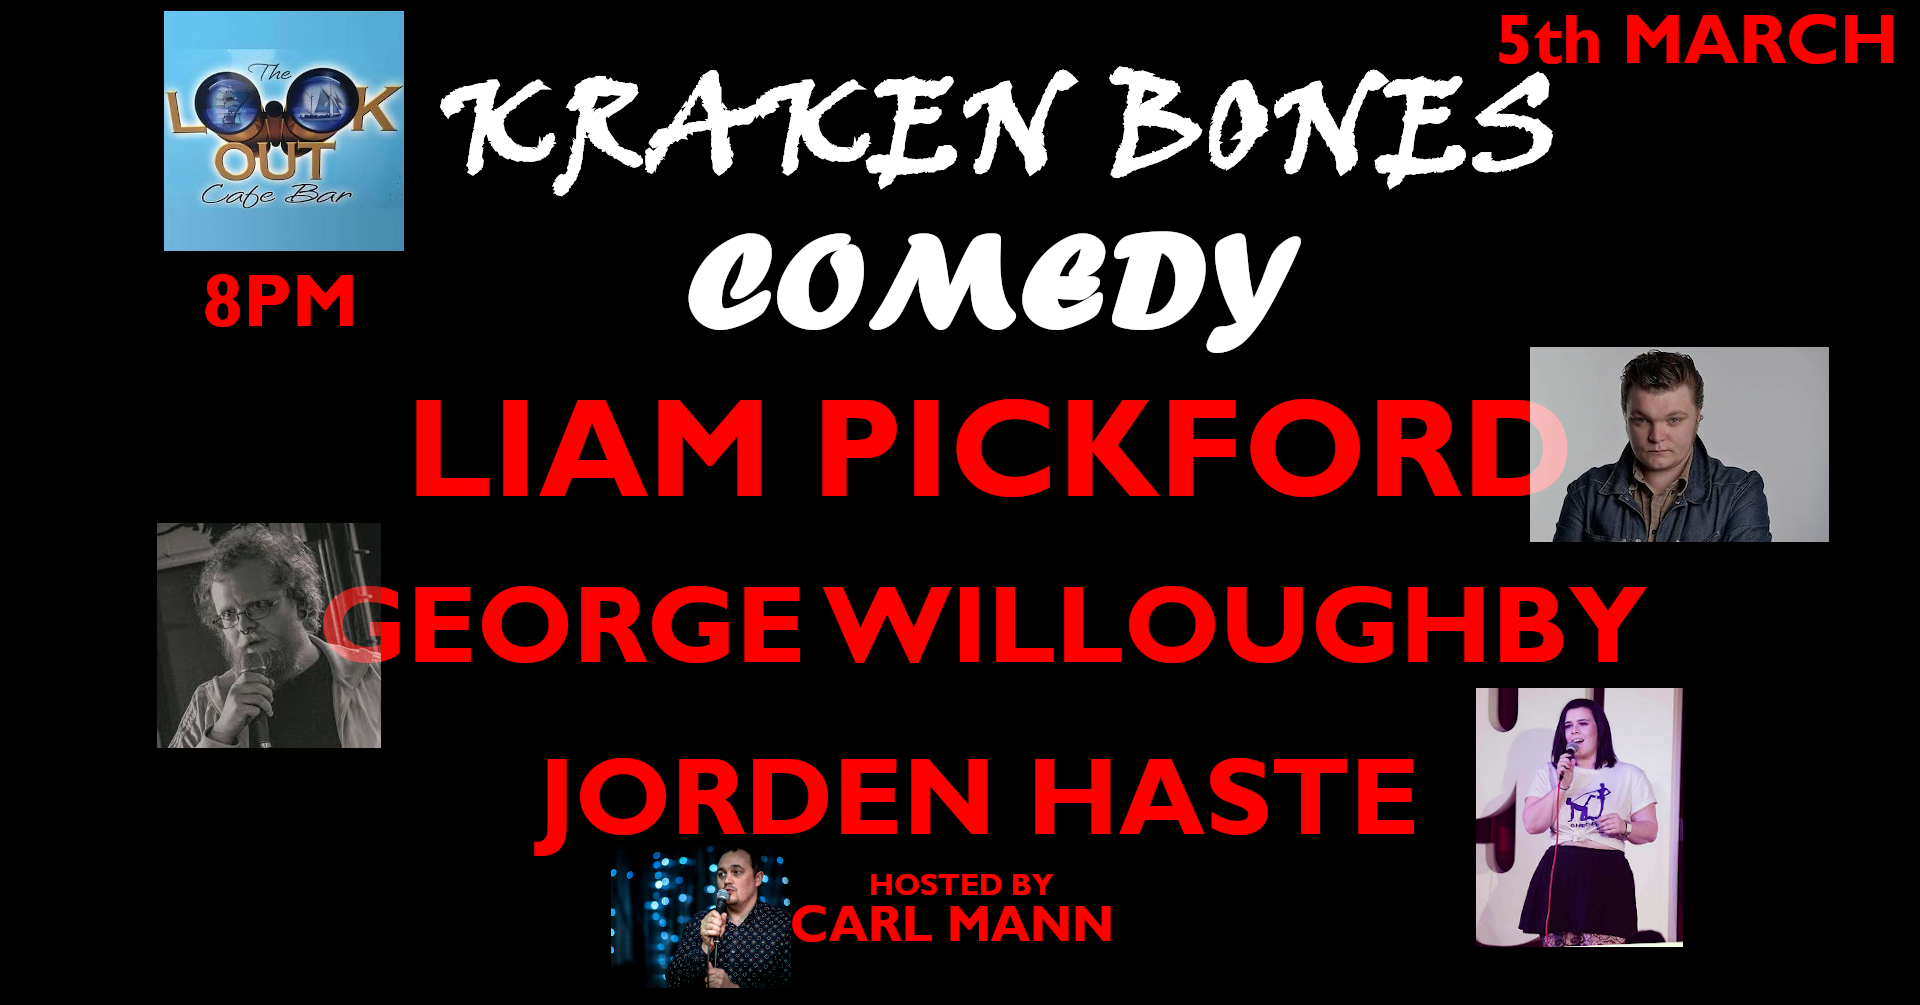 Event Poster For Kraken Bones Comedy II